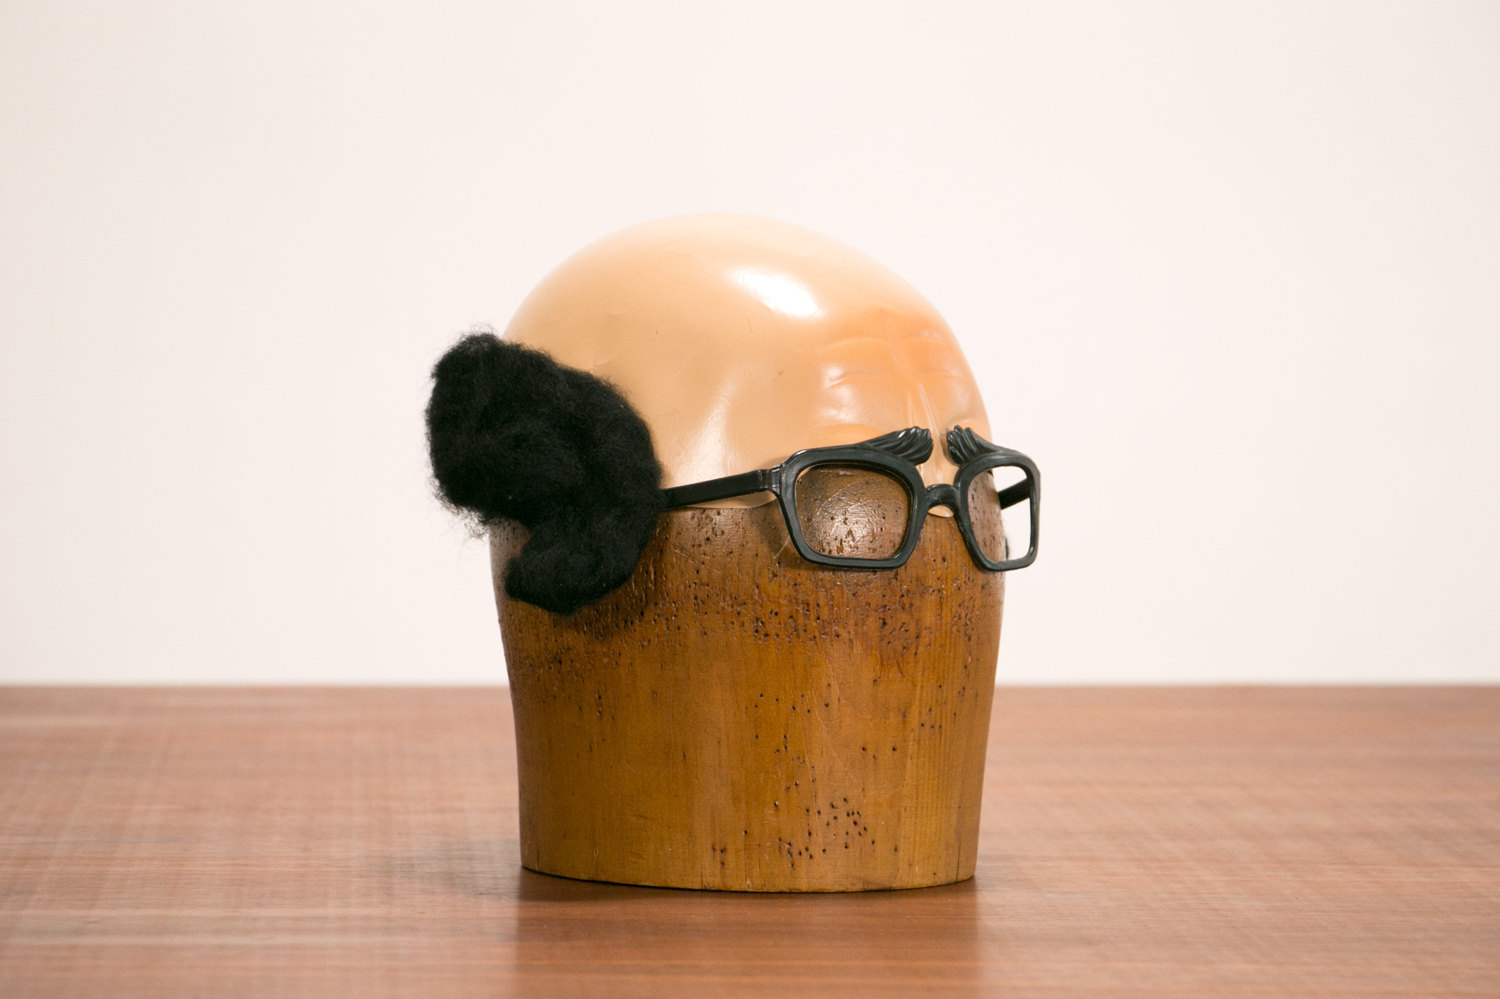 Rare 1960's Vintage French Halloween Mask - Bald Man Cap with Glasses!